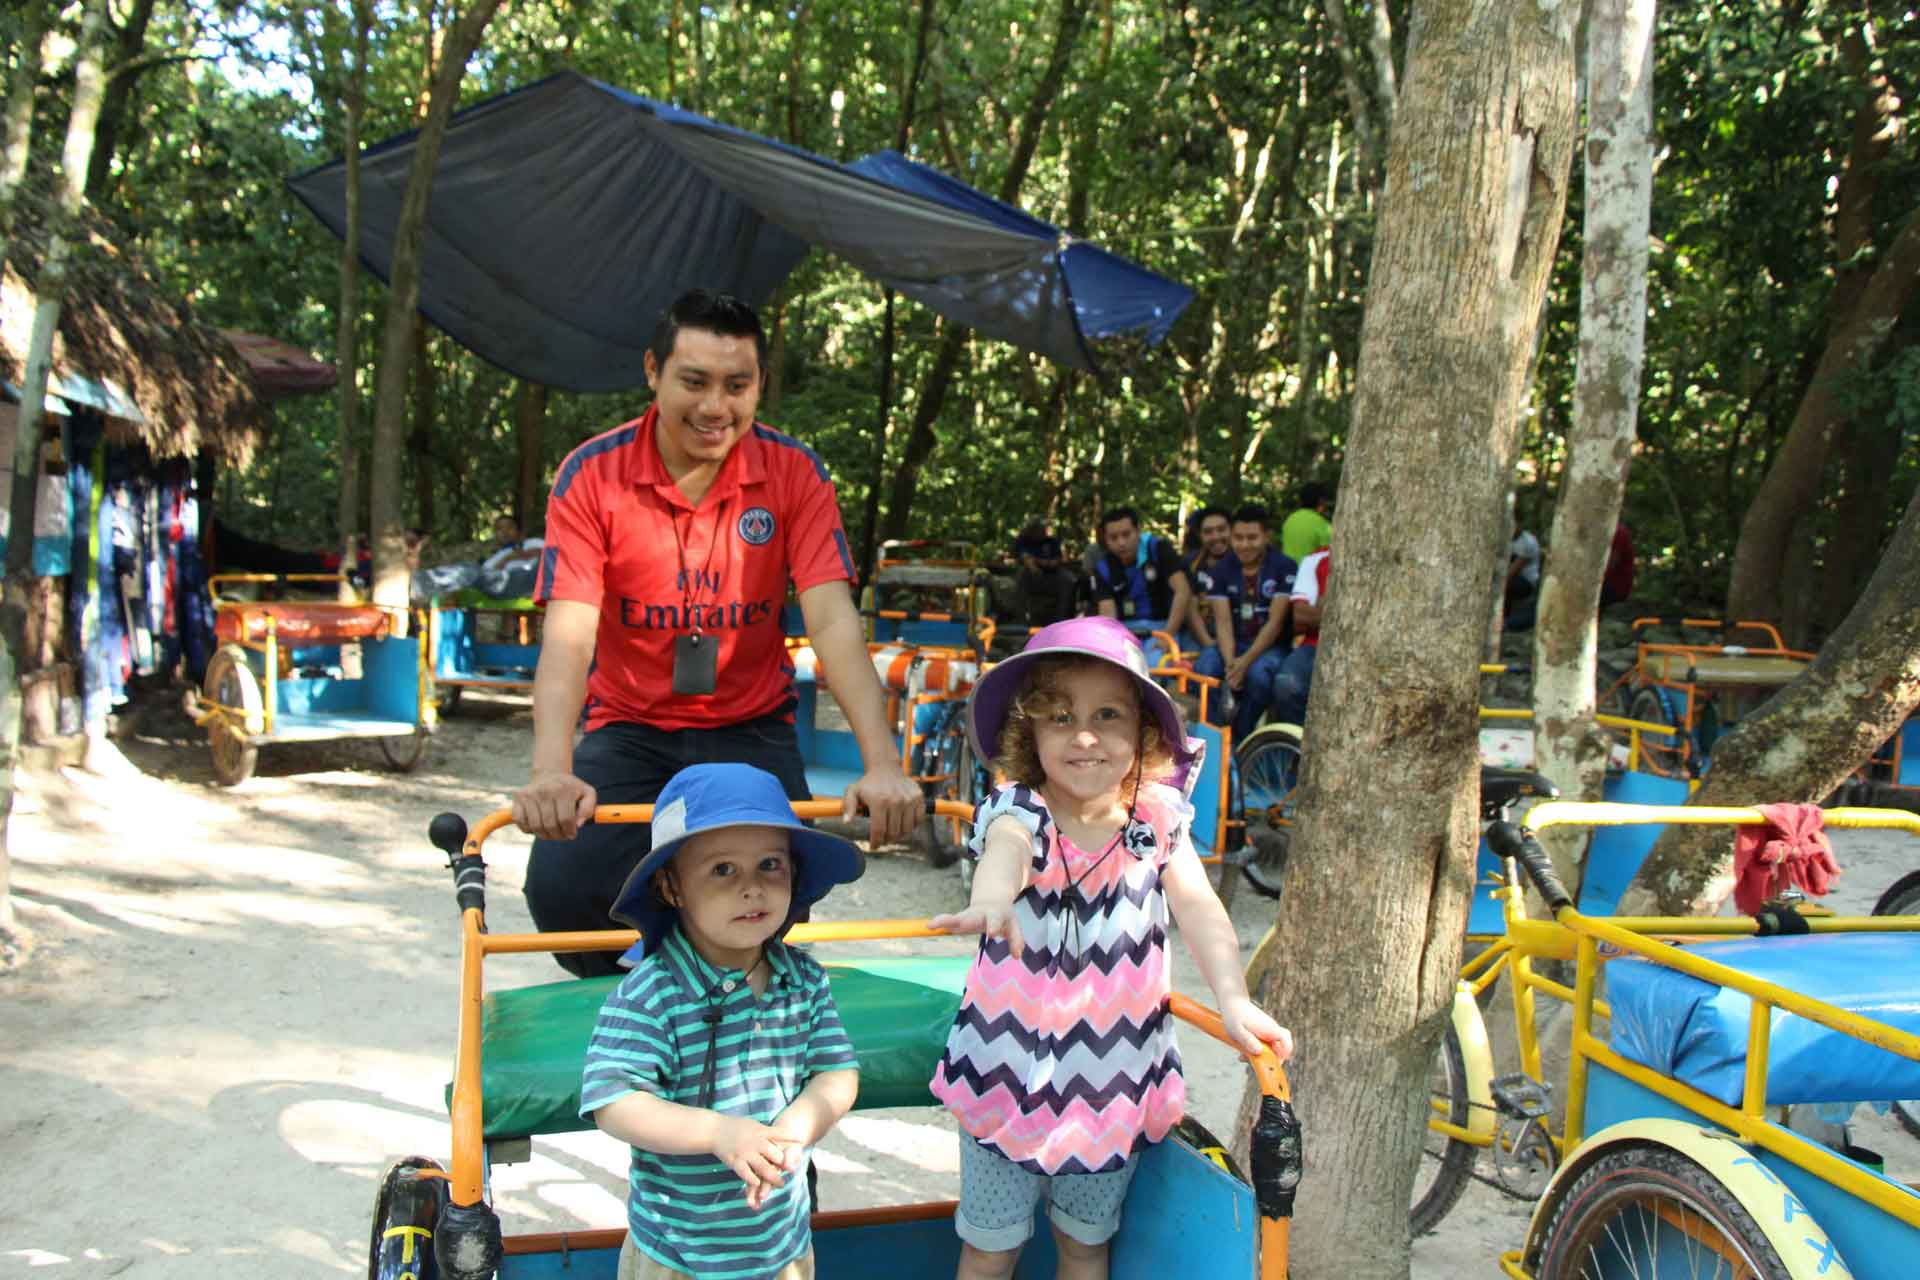 Riding bike in Coba with children